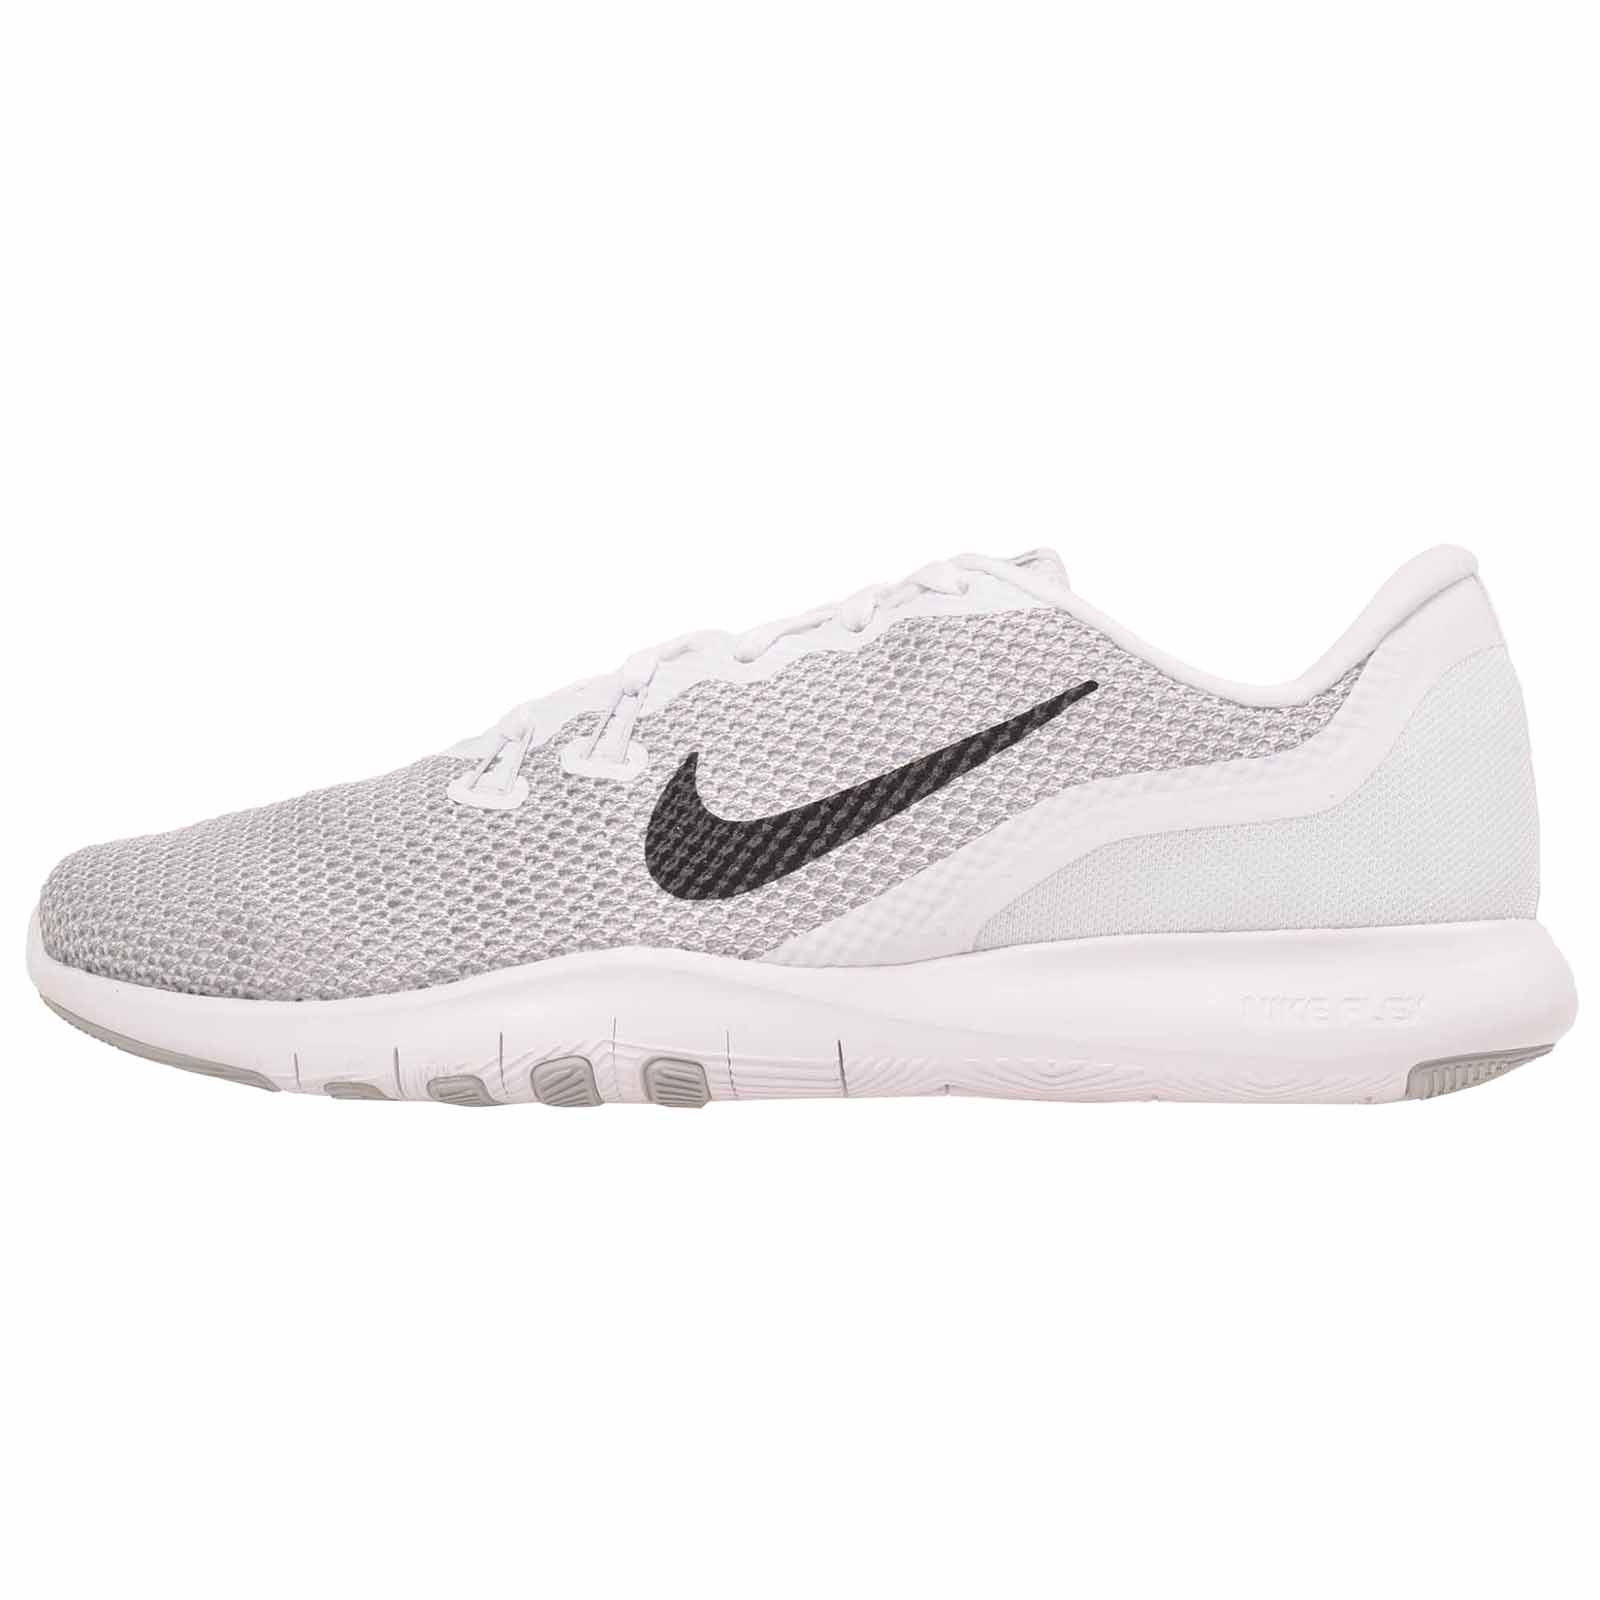 a373a786b89c Details about Nike Wmns Flex Trainer 7 Cross Training Womens Shoes White  Silver 898479-100